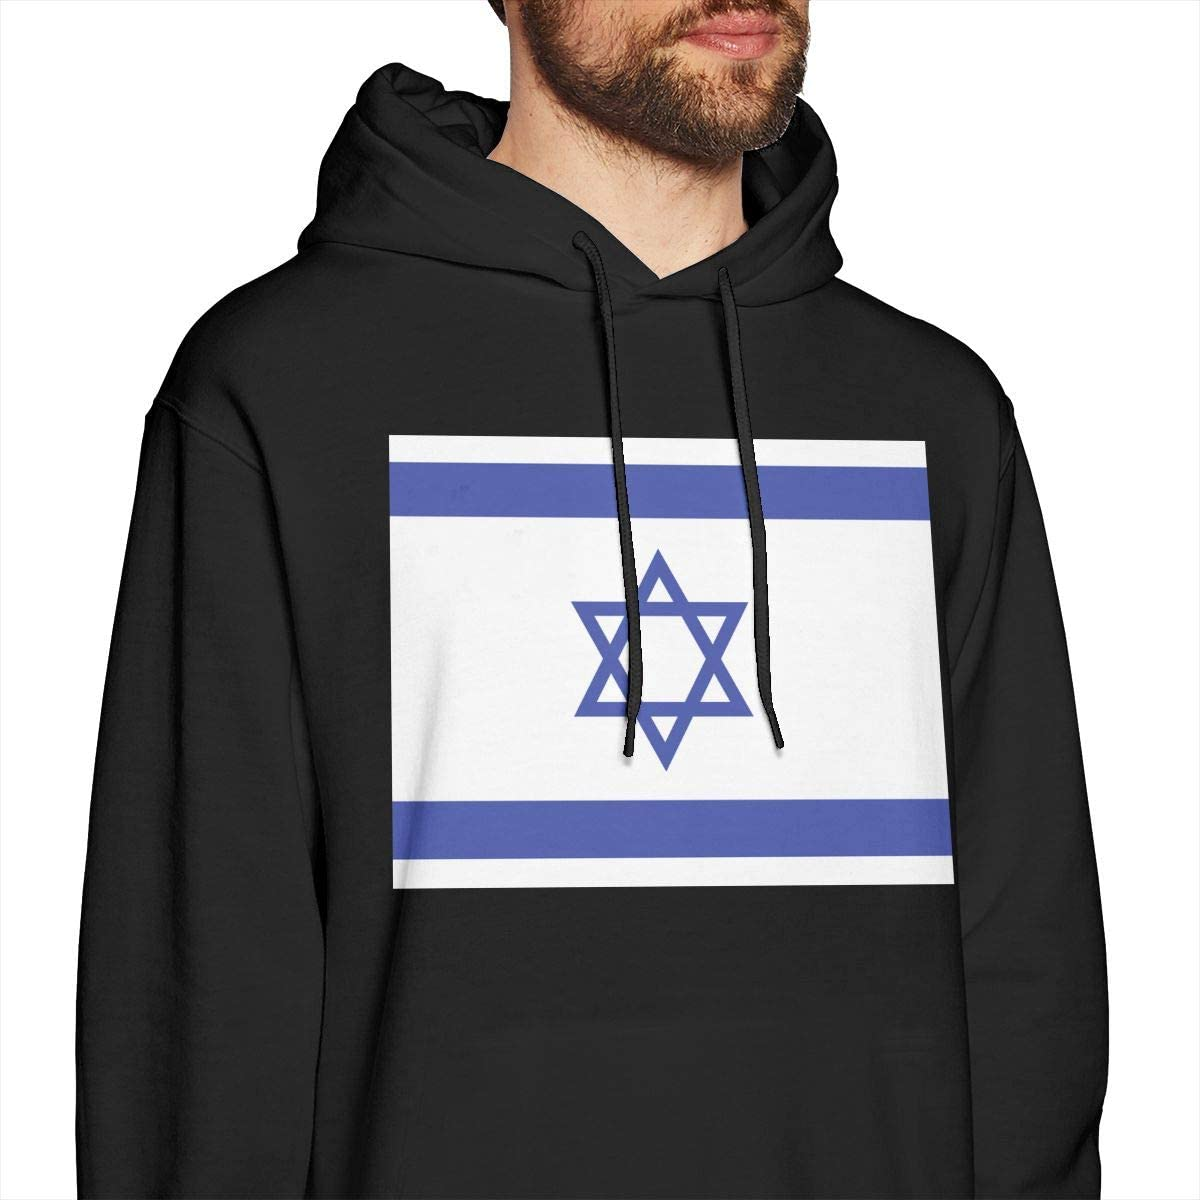 Mens Hoodies Israeli Flag Cool Pullover Hooded Print Sweatshirt Jackets